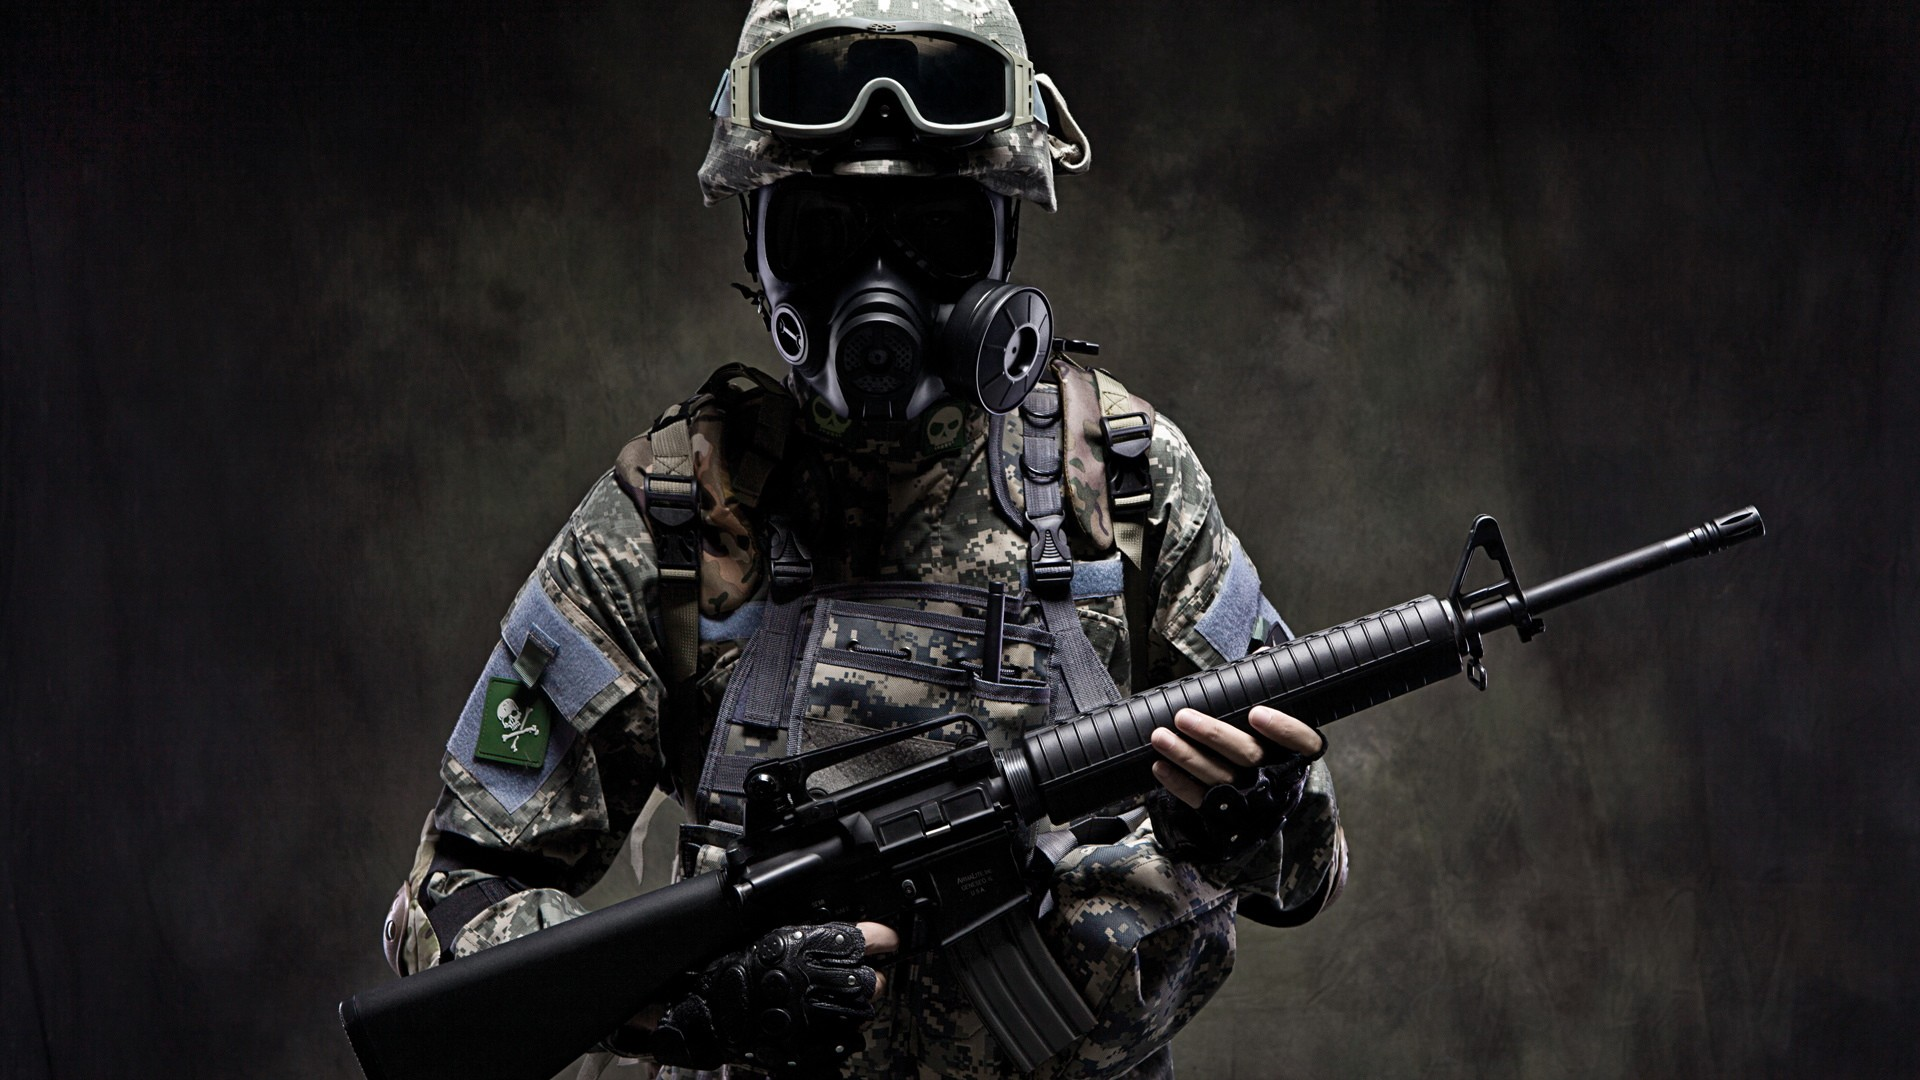 Call Of Duty 4: Modern Warfare Wallpapers, Pictures, Images